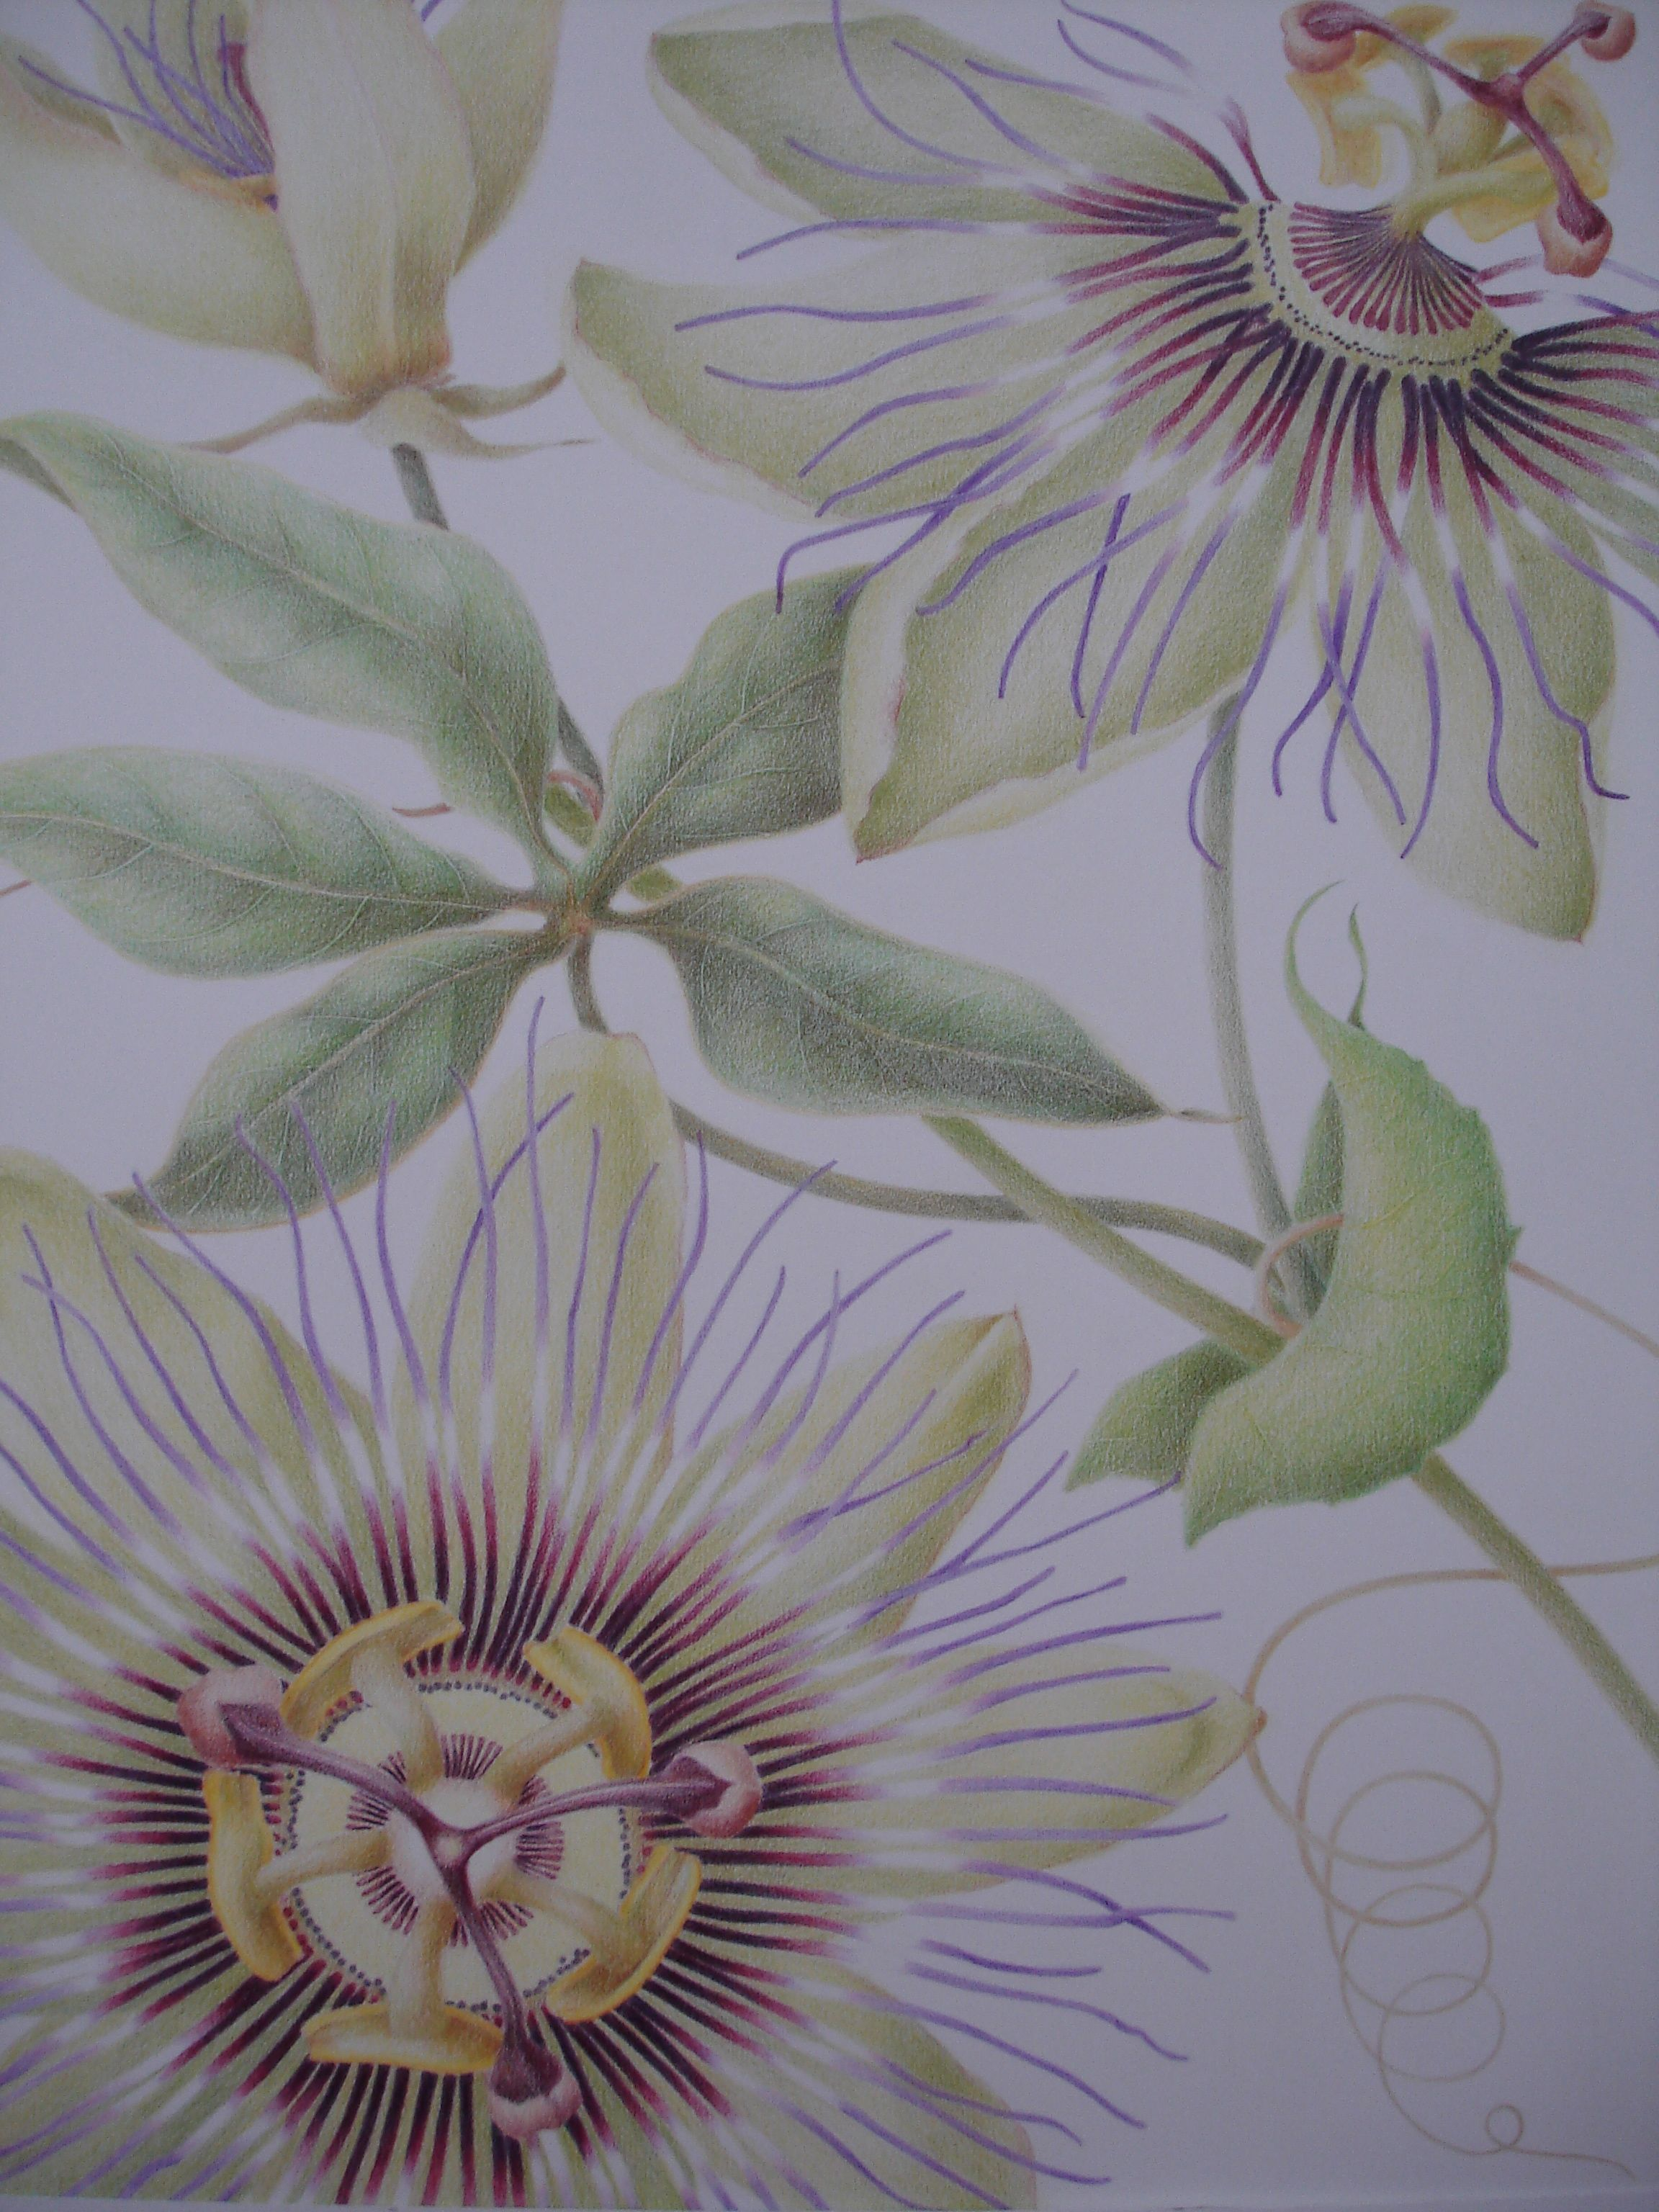 Passion Flower Colored Pencil Drawing By Jill M Hodgson Art Inspiration Passion Flower Colored Pencil Drawing